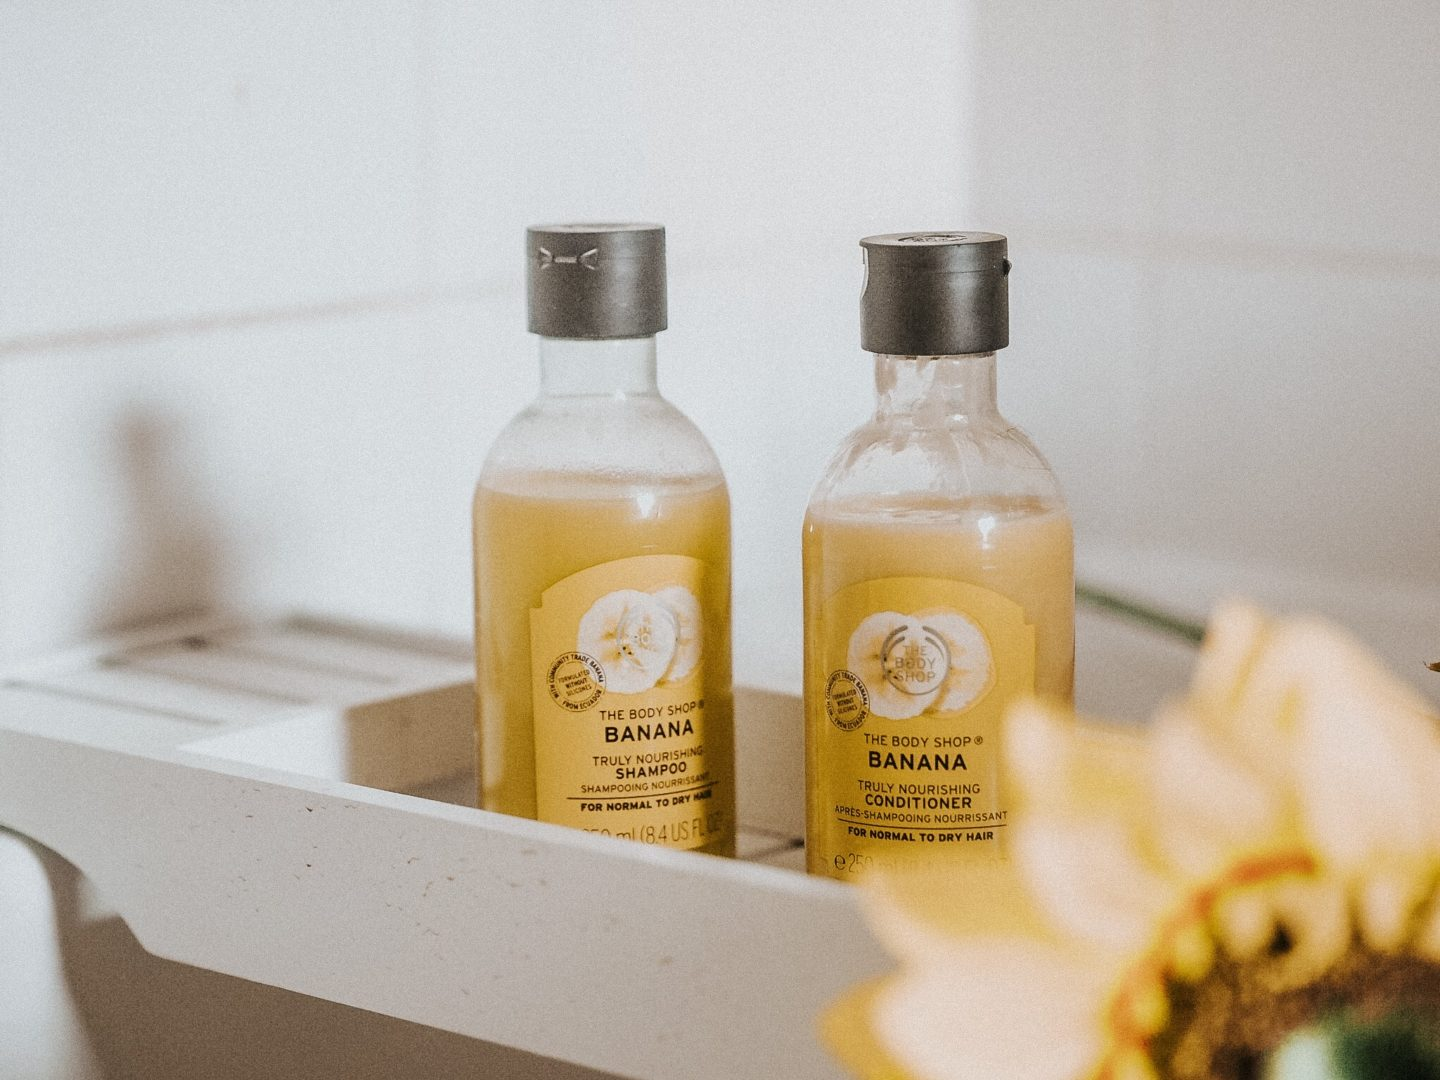 The Body Shop Banana Shampoo and Conditioner Review